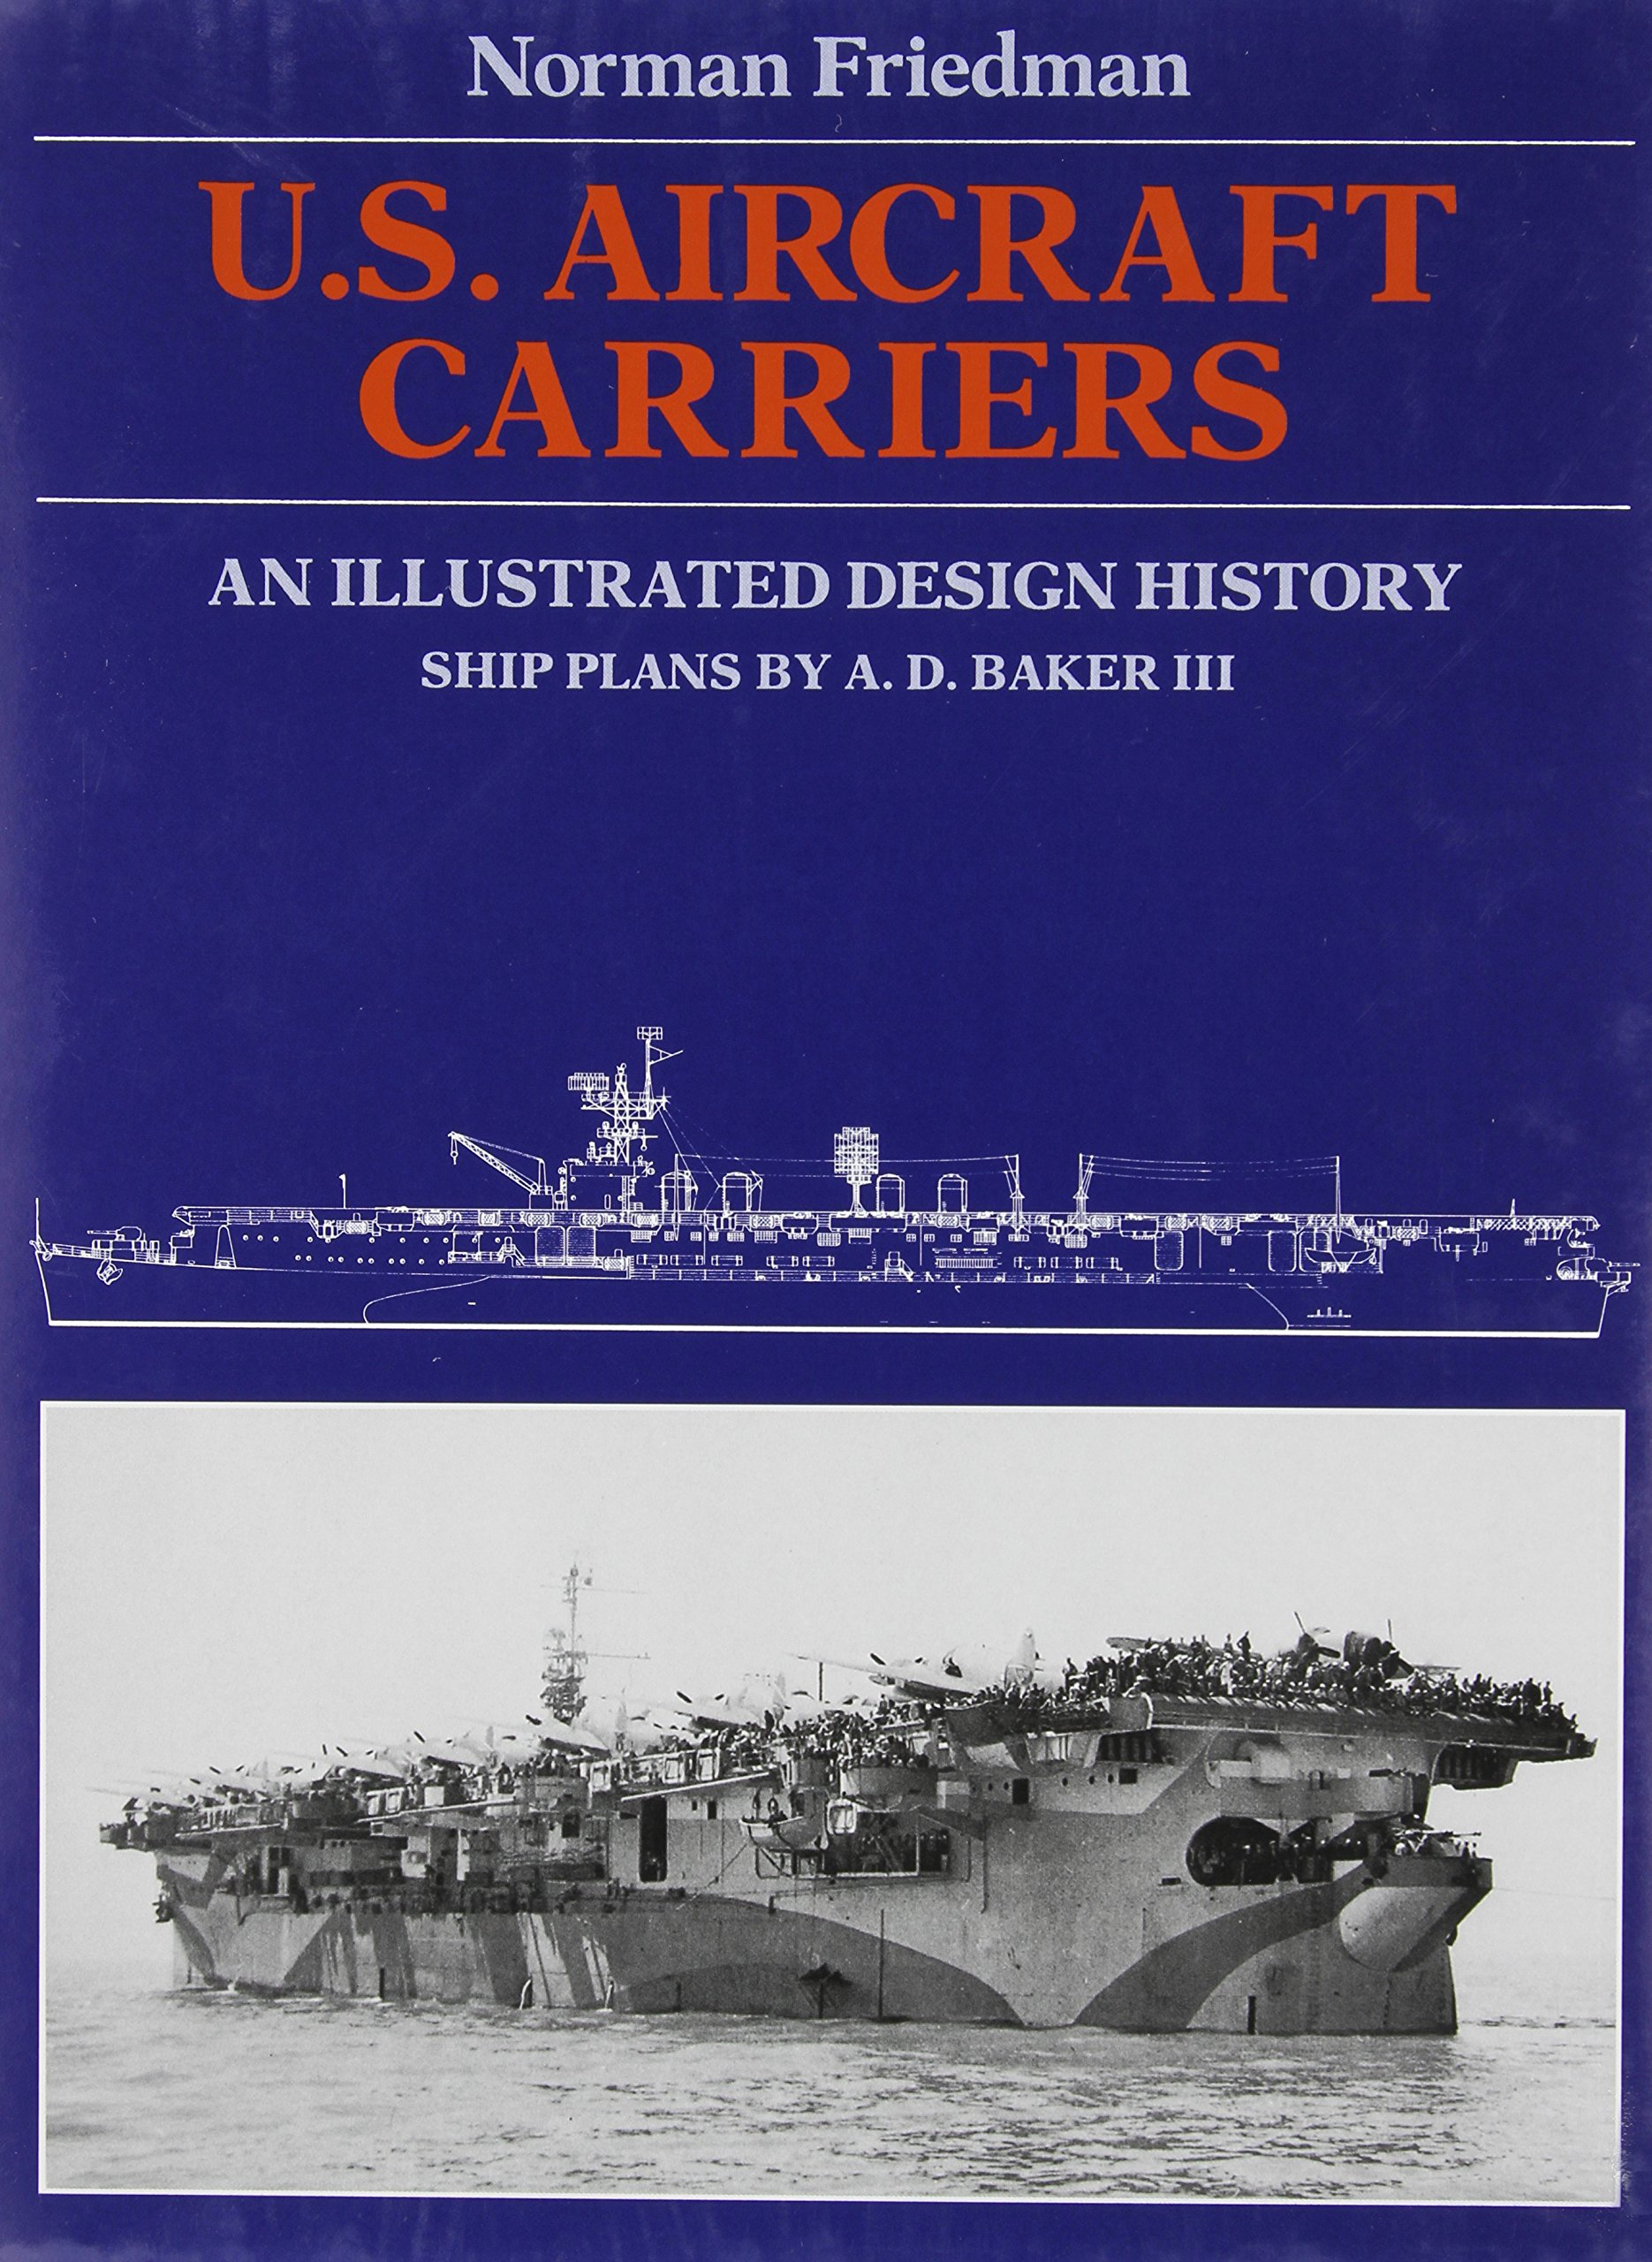 U.S. Aircraft Carriers: An Illustrated Design History by Naval Institute Press